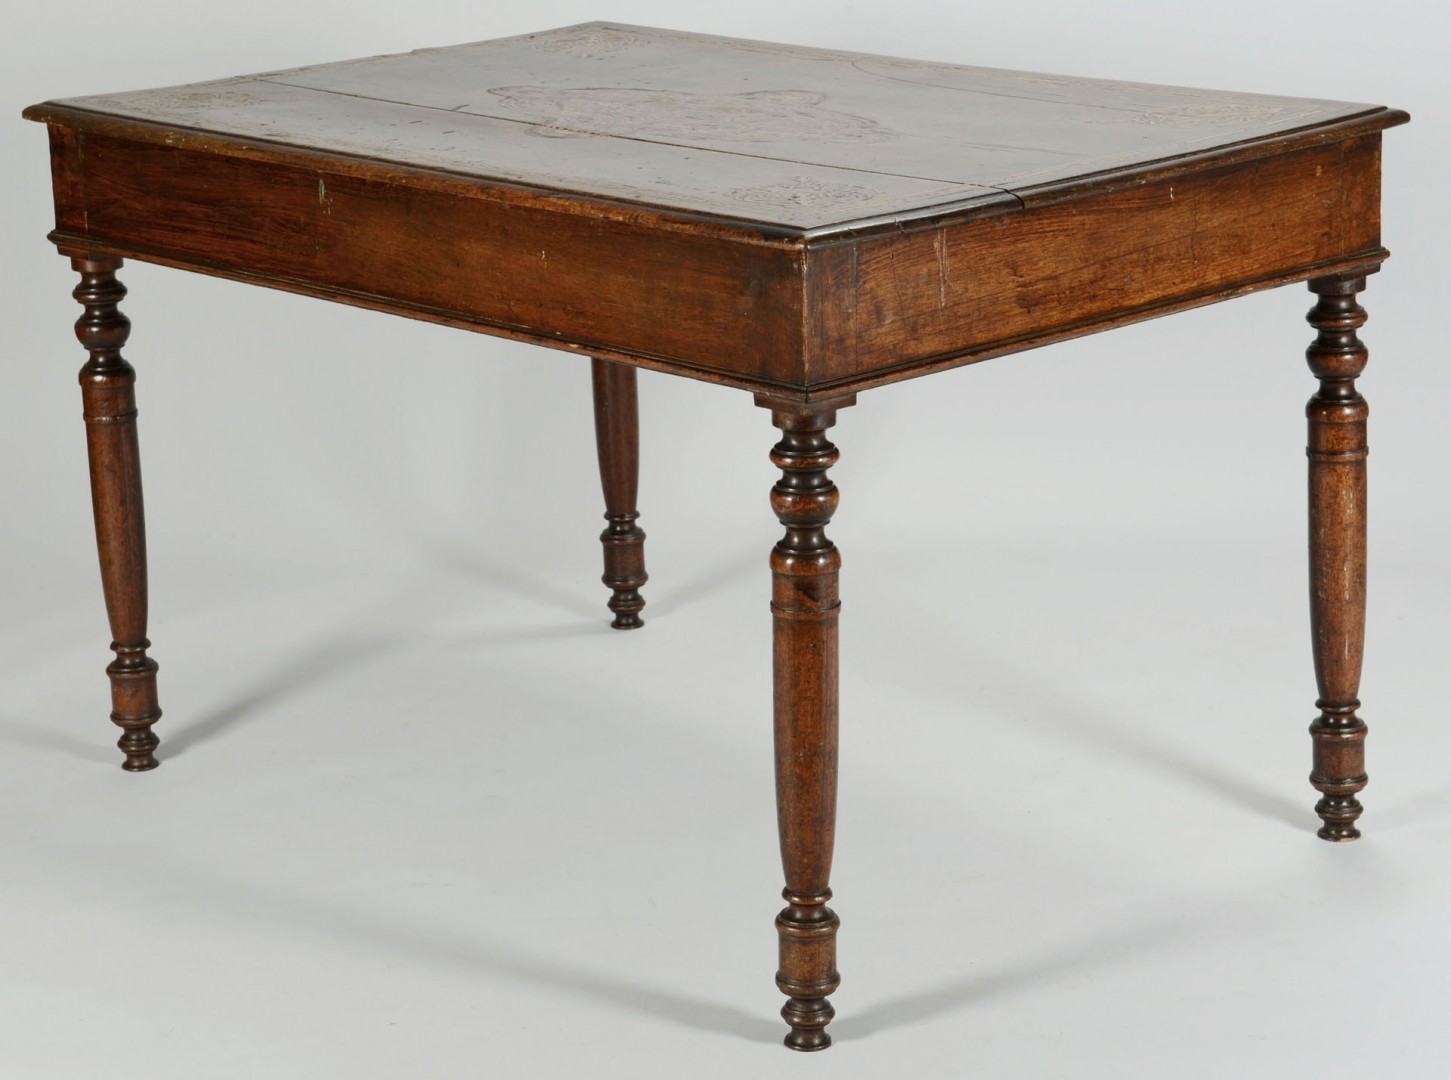 Lot 344: Continental inlaid writing table or desk